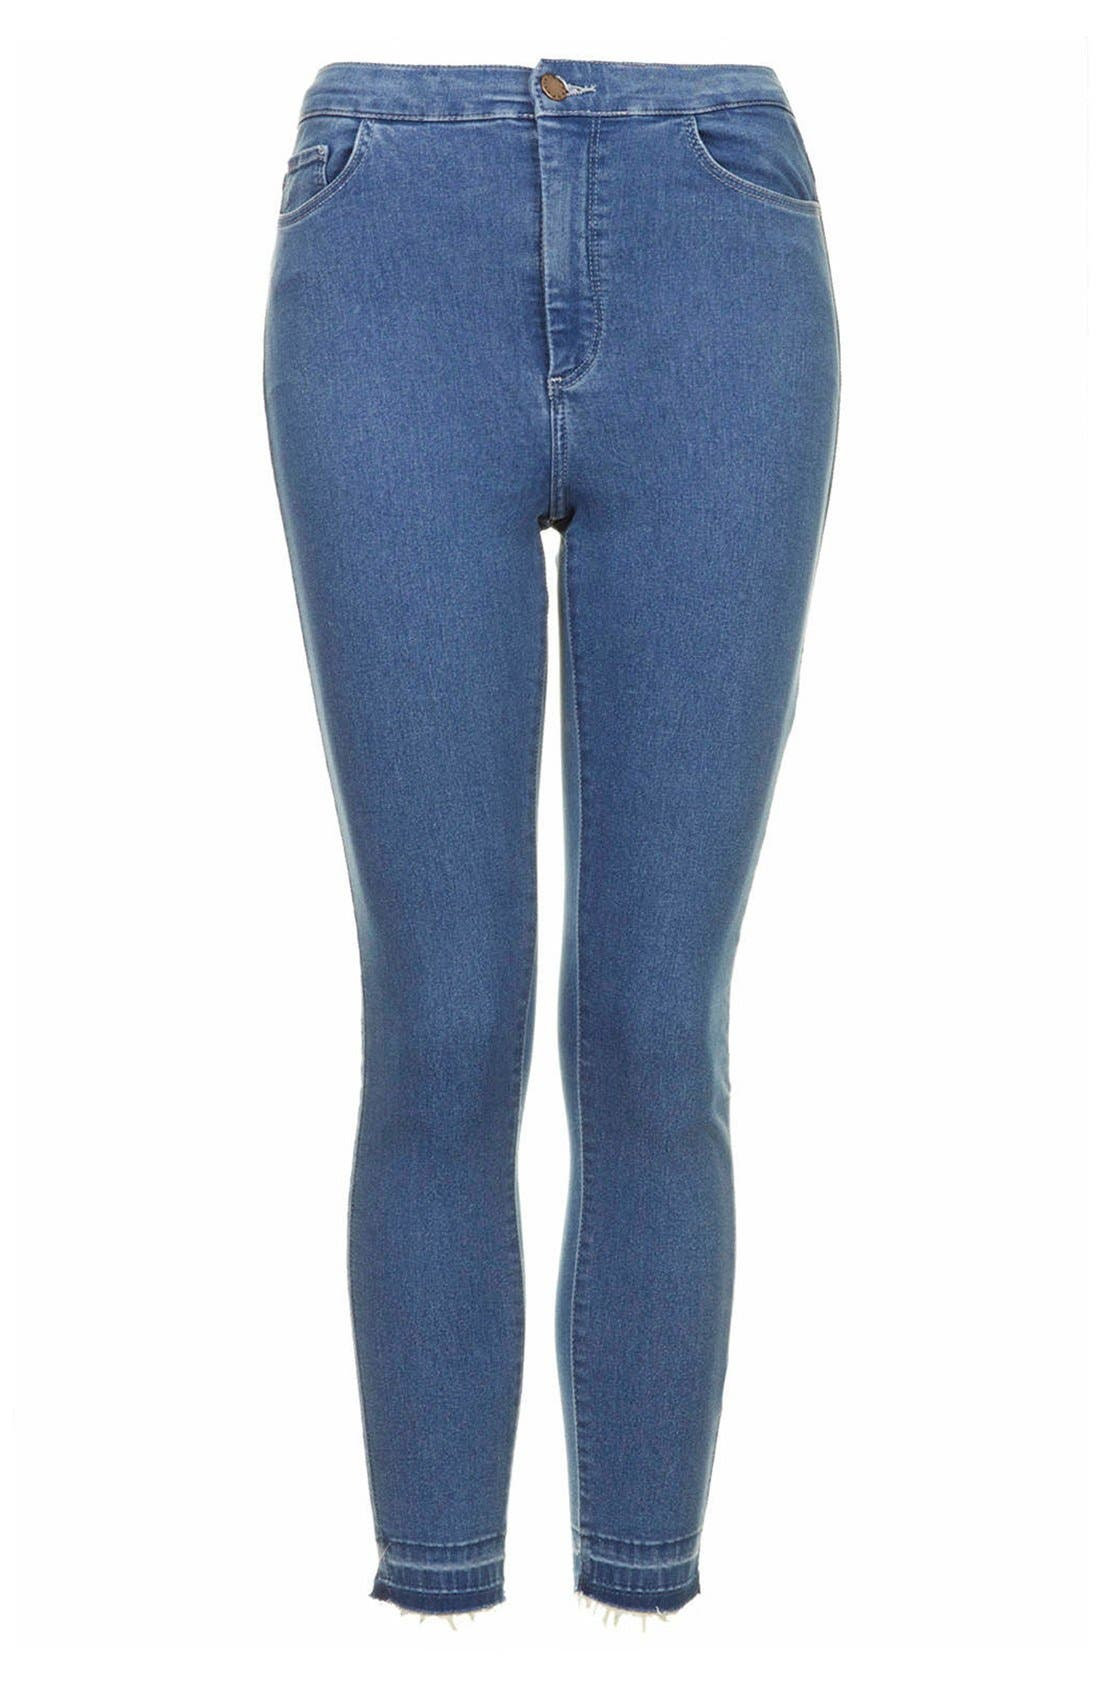 Alternate Image 3  - Topshop Moto 'Joni' High Rise Crop Skinny Jeans (Light)